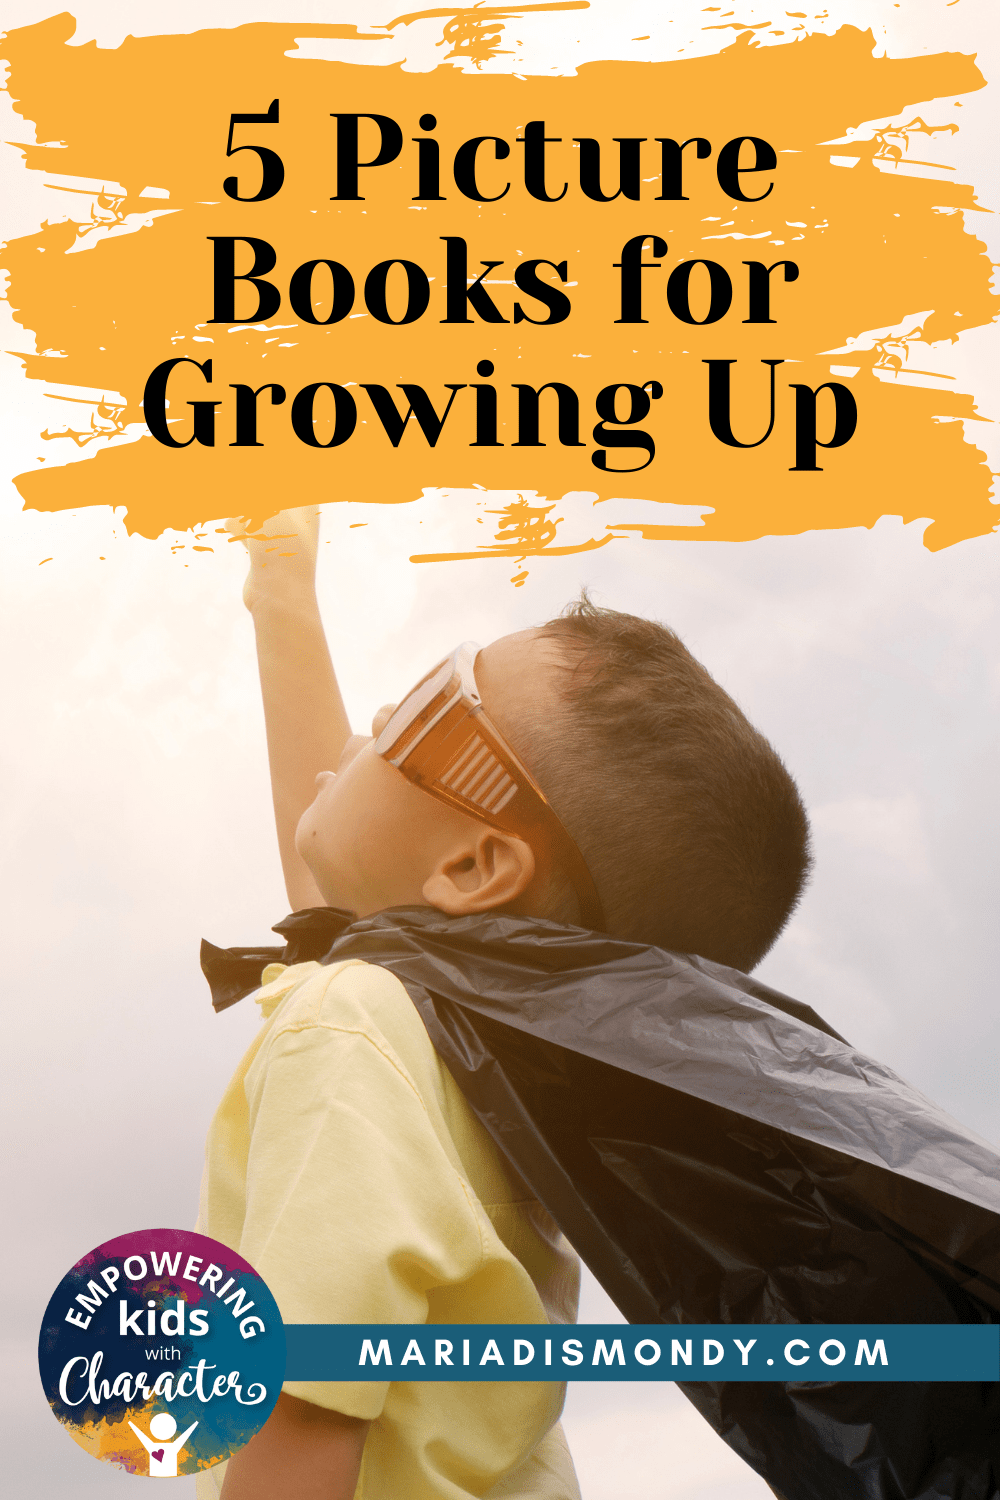 Five Picture Books for Growing Up